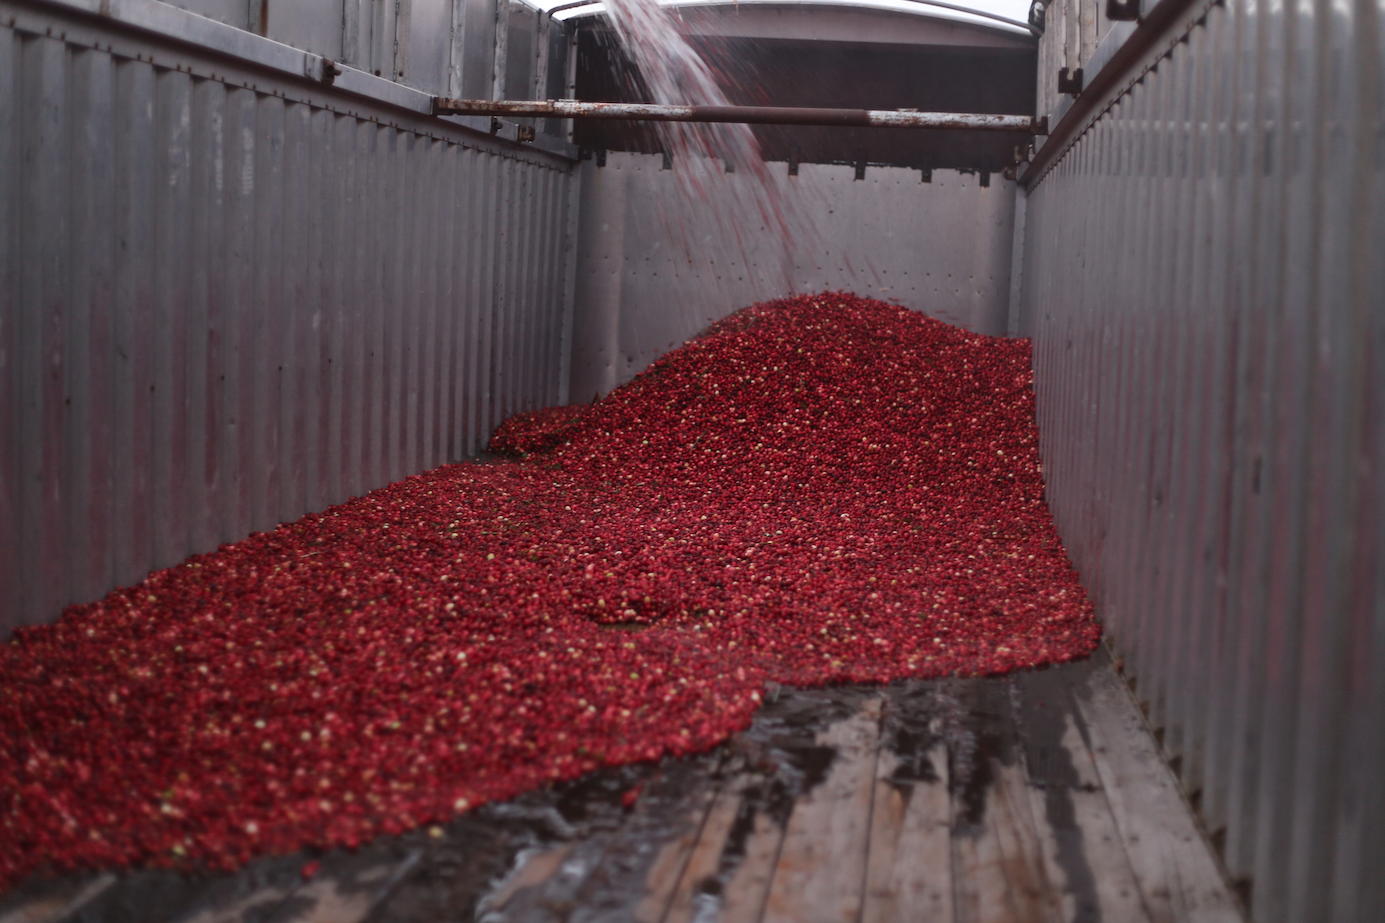 Here they are being loaded into the back of a semi, they estimated the harvest would be around 30,000lbs the day we visited